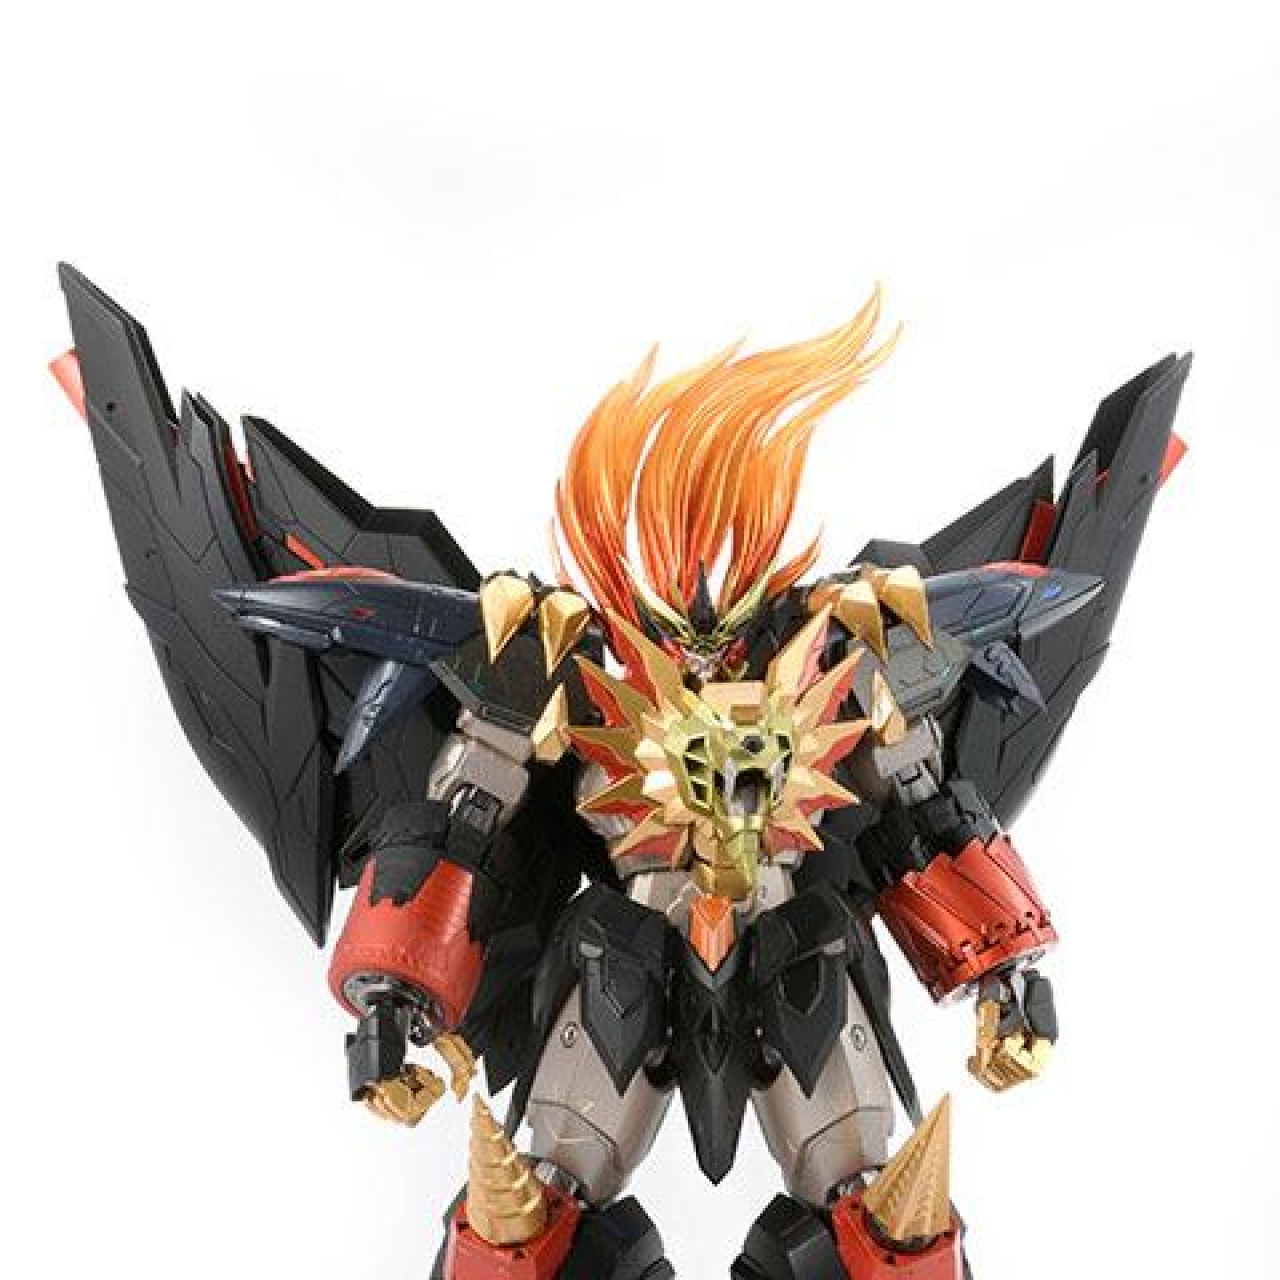 The King of Braves GaoGaiGar Final Amakuni Kizin Diecast Action Figure Genesic GaoGaiGar 24 cm